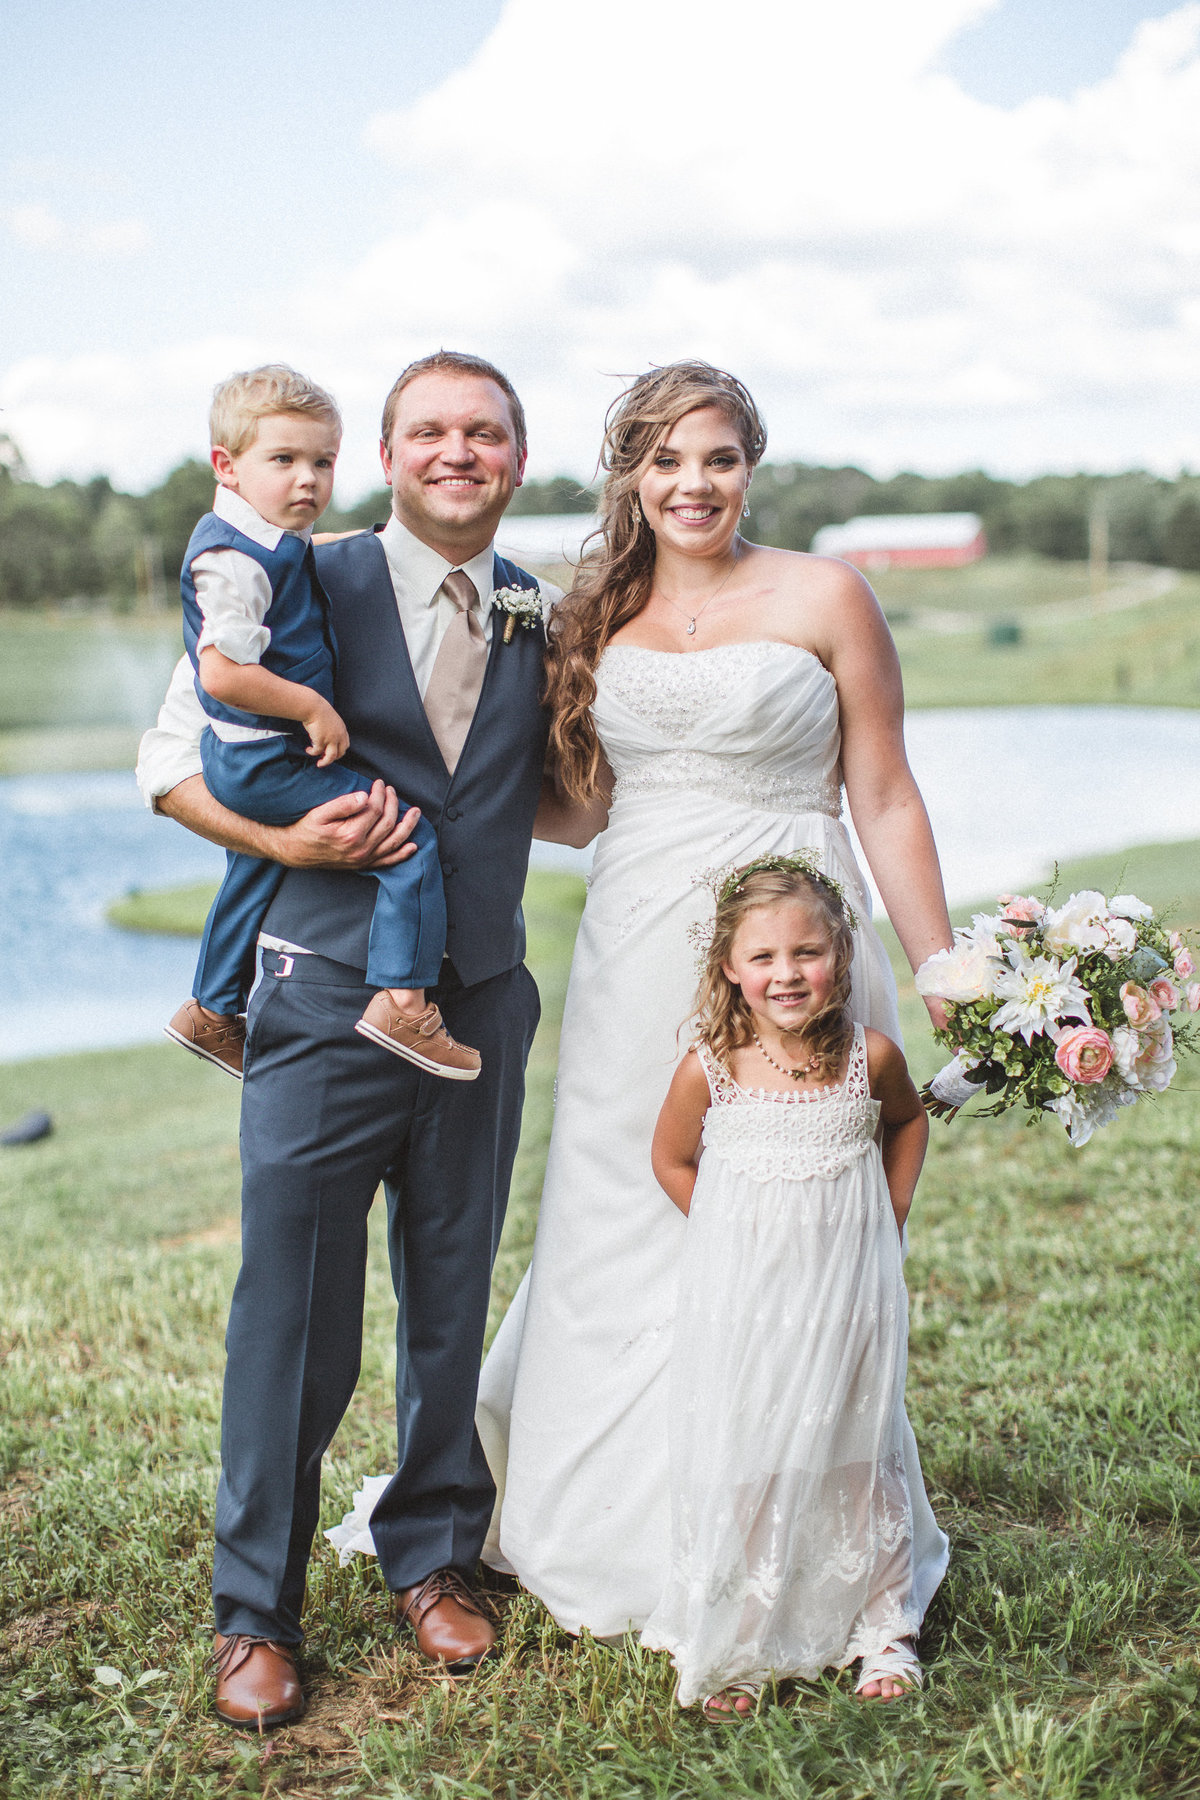 Columbus Wedding Photograpy - Zach + Faith - DiBlasio Photo-4970